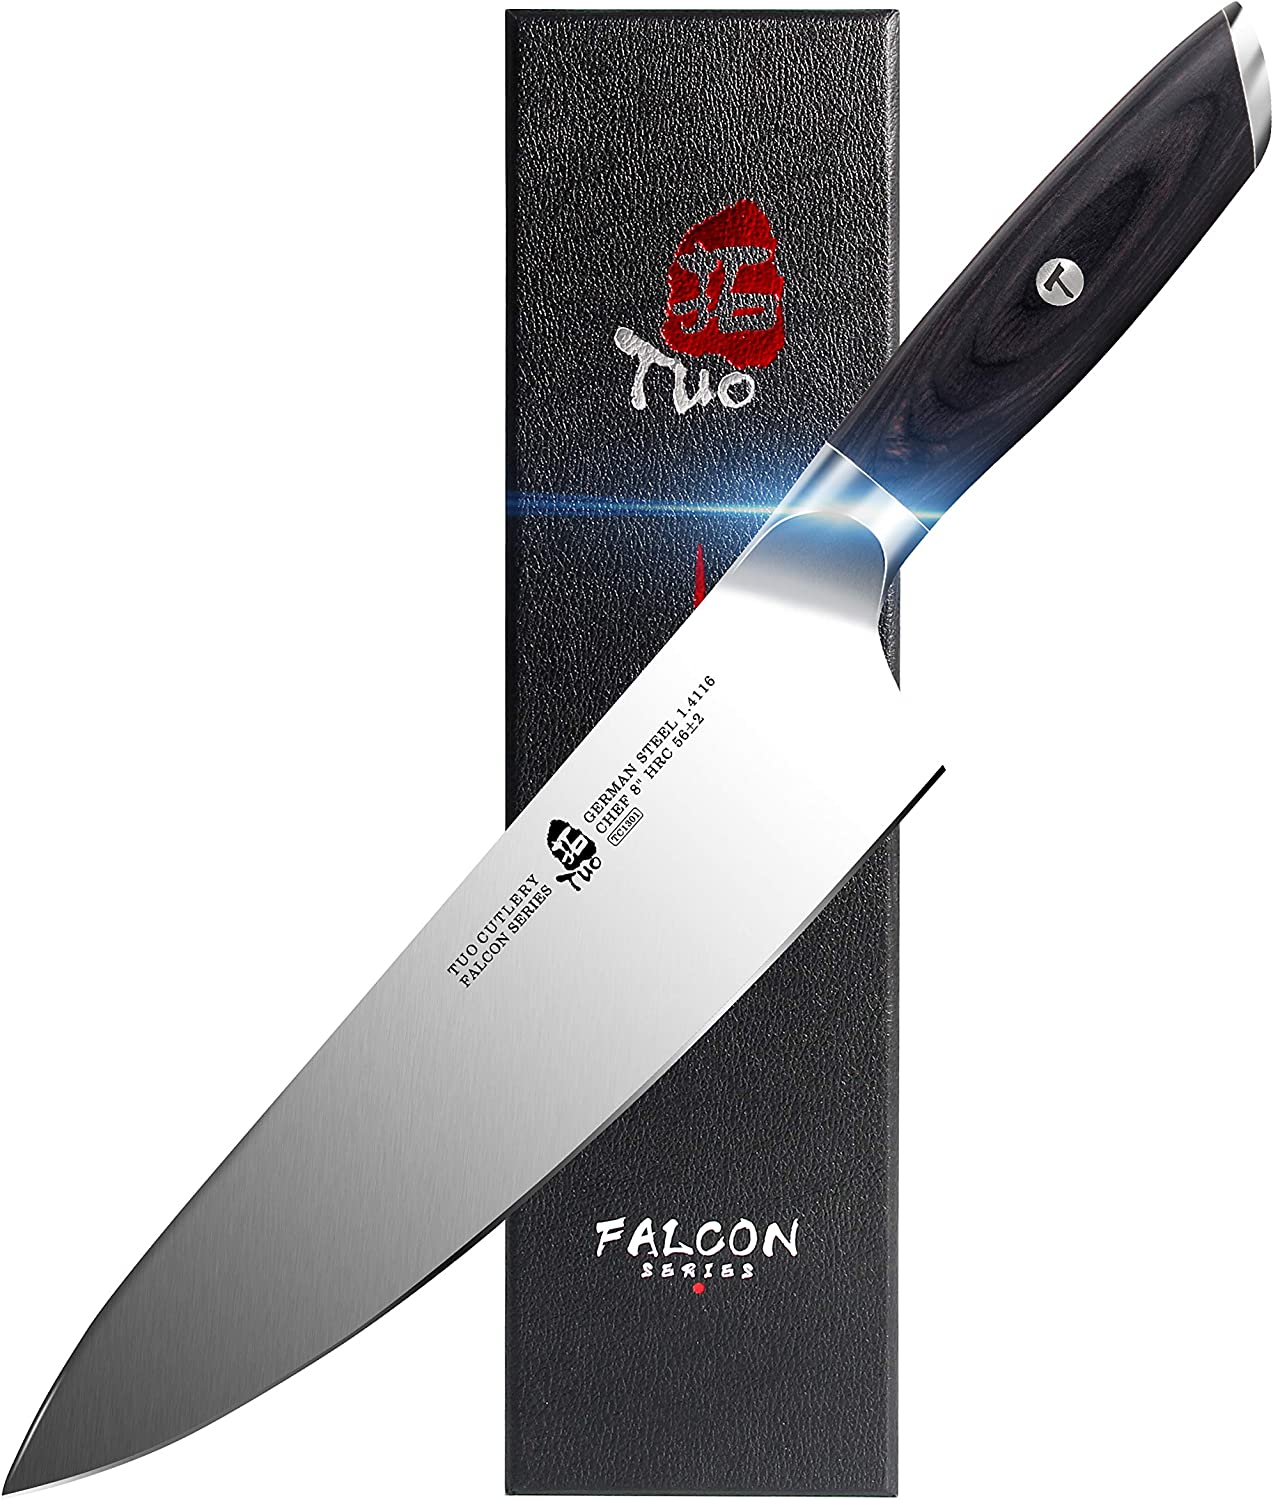 TUO Chef Knife 8 inch Japanese Indianapolis Mall Gyut Cheap mail order shopping - Kitchen Cooking